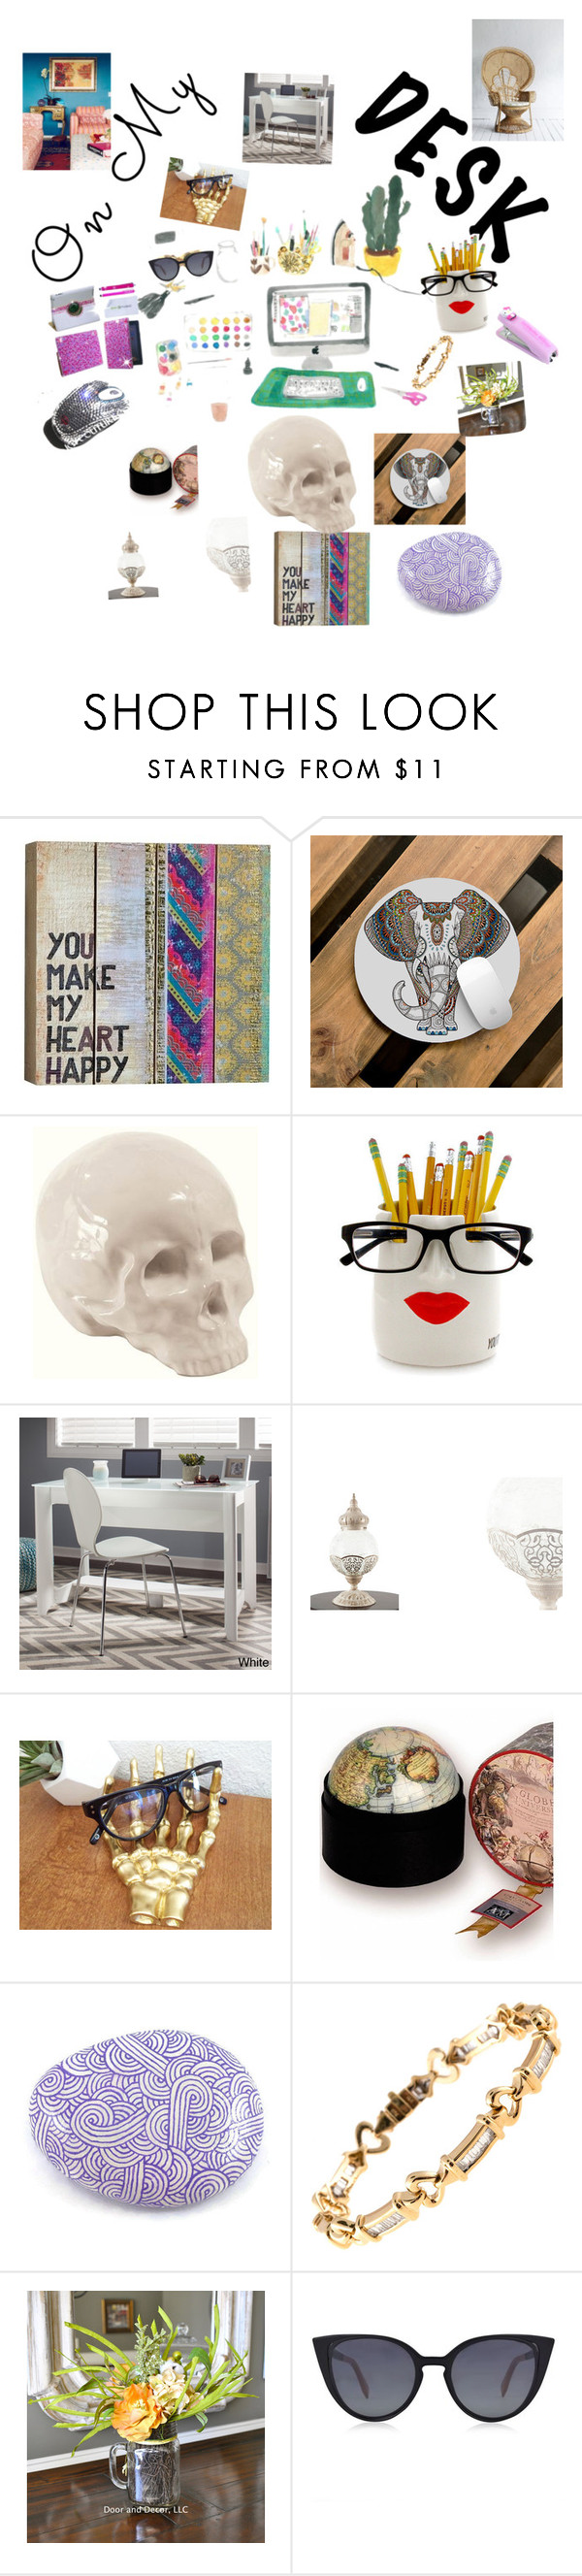 """""""ON MY DESK WHERE OPPORTUNITIES MEET ME"""" by maijah ❤ liked on Polyvore featuring interior, interiors, interior design, home, home decor, interior decorating, Natural Life, Seletti, Bush Industries and Crystal Clear Skincare"""